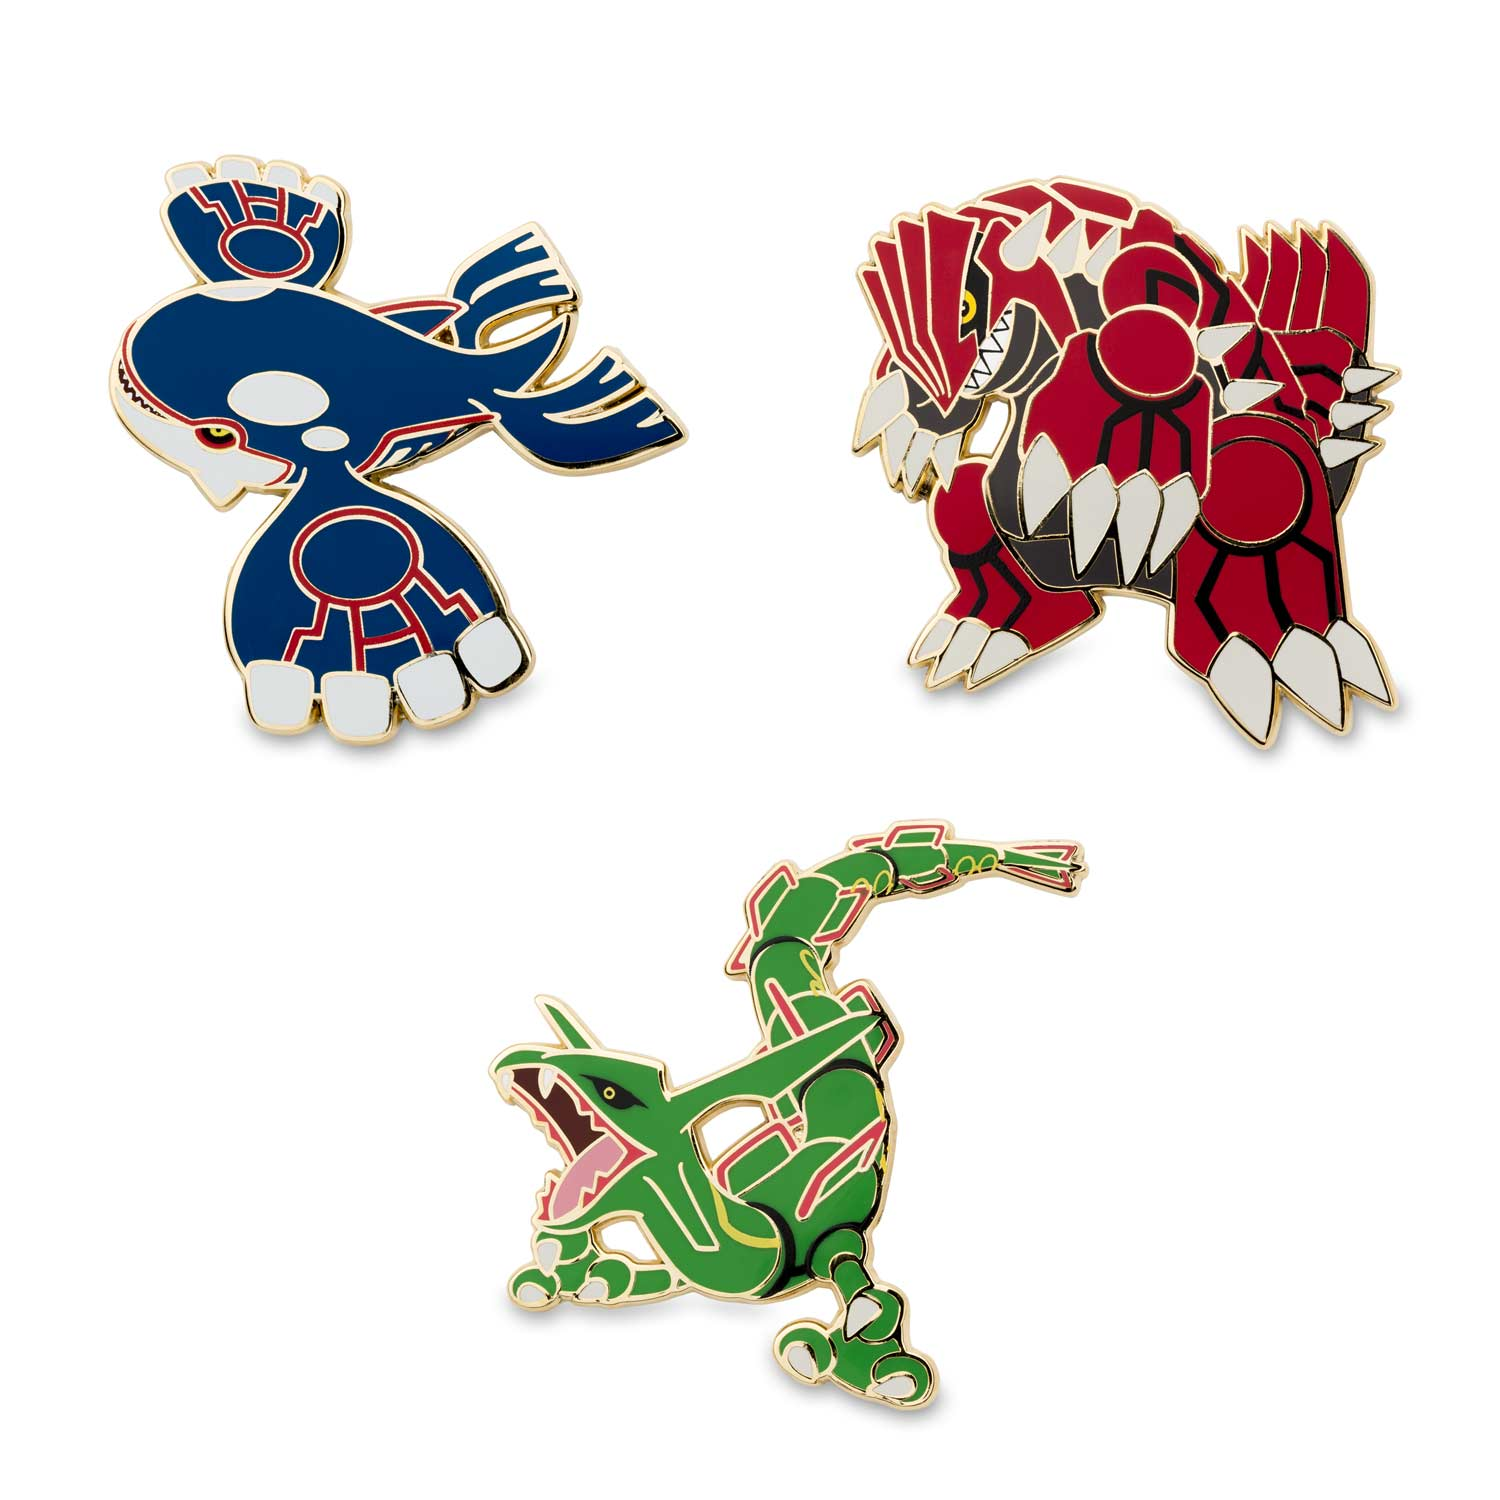 Kyogre groudon and rayquaza pok mon pins legendary pok mon center original - Pictures of groudon and kyogre ...